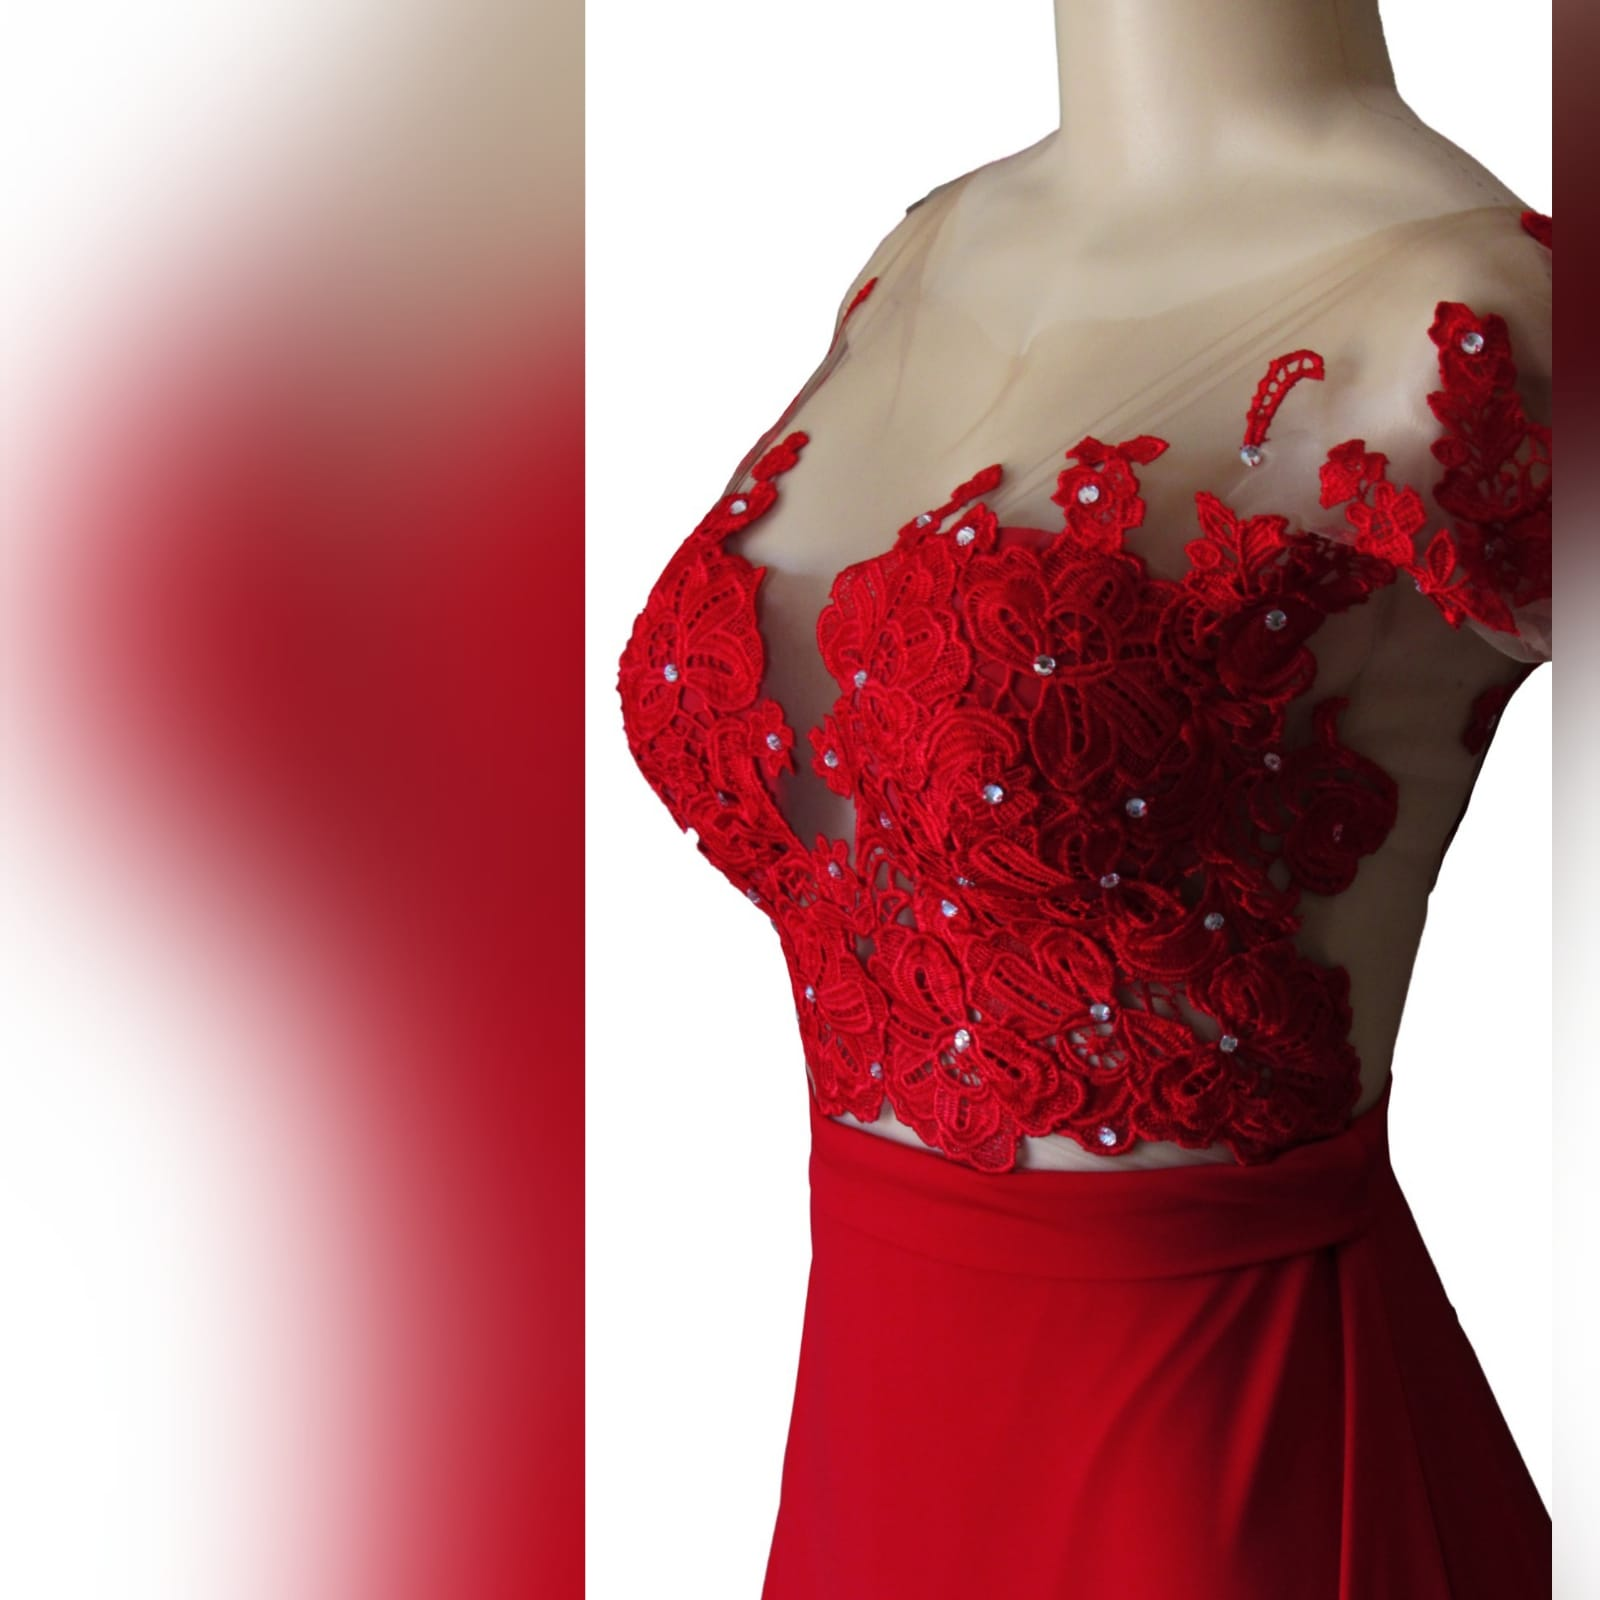 Red flowy lace bodice prom dress 9 red flowy lace bodice prom dress. With an illusion lace bodice detailed with silver beads and buttons. Evening dress with a slit and a train.